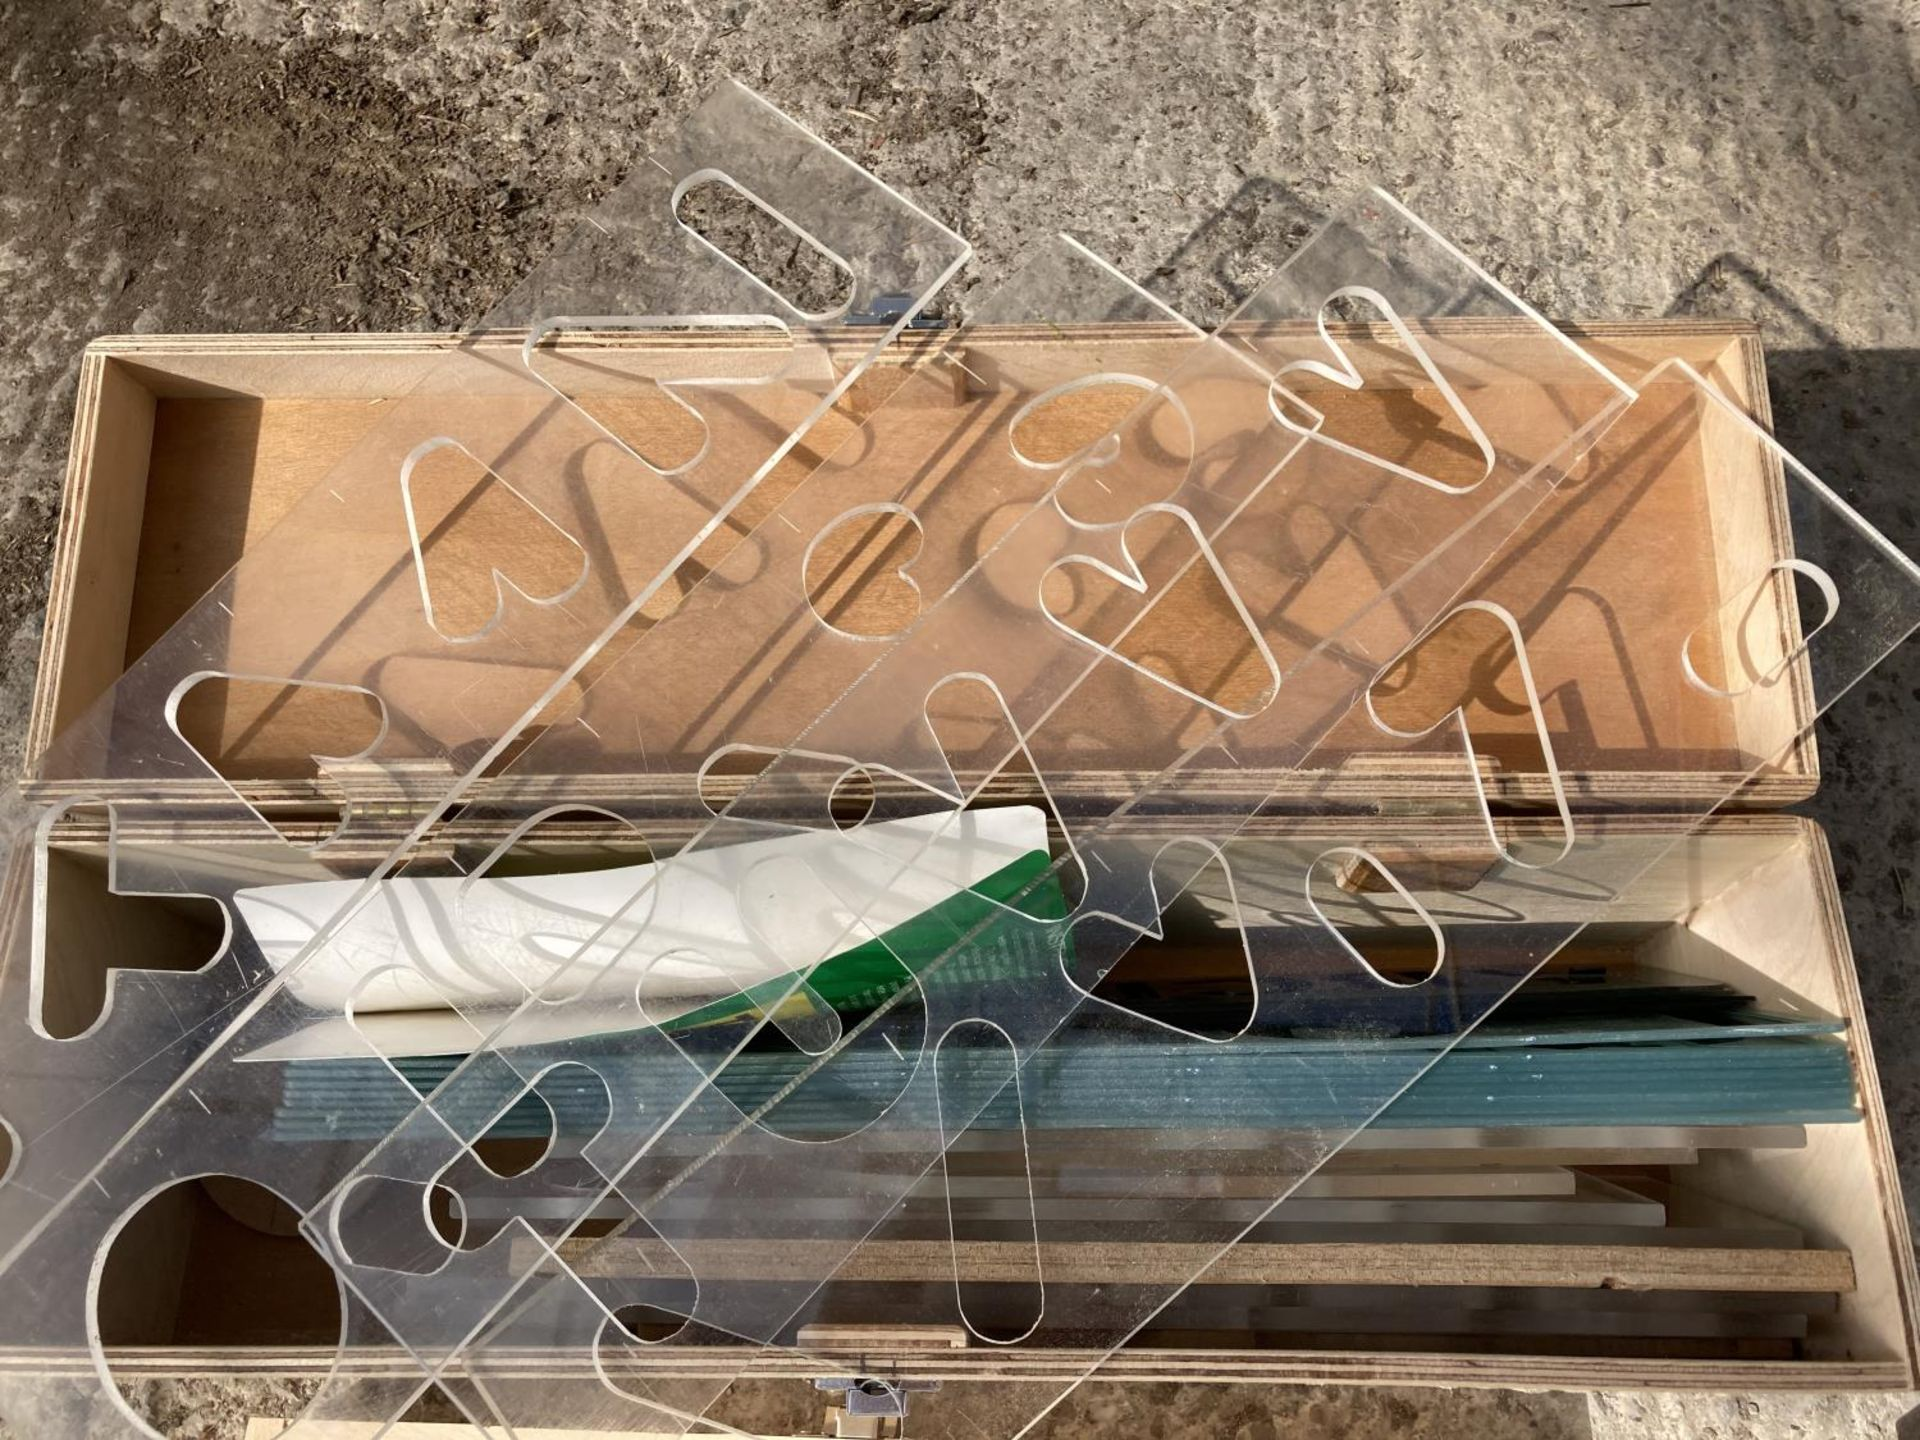 FOUR BOXES CONTAINING ARBORTECH CUTTERS, DRILL ATTACHMENTS, STENCILS NO VAT - Image 2 of 5